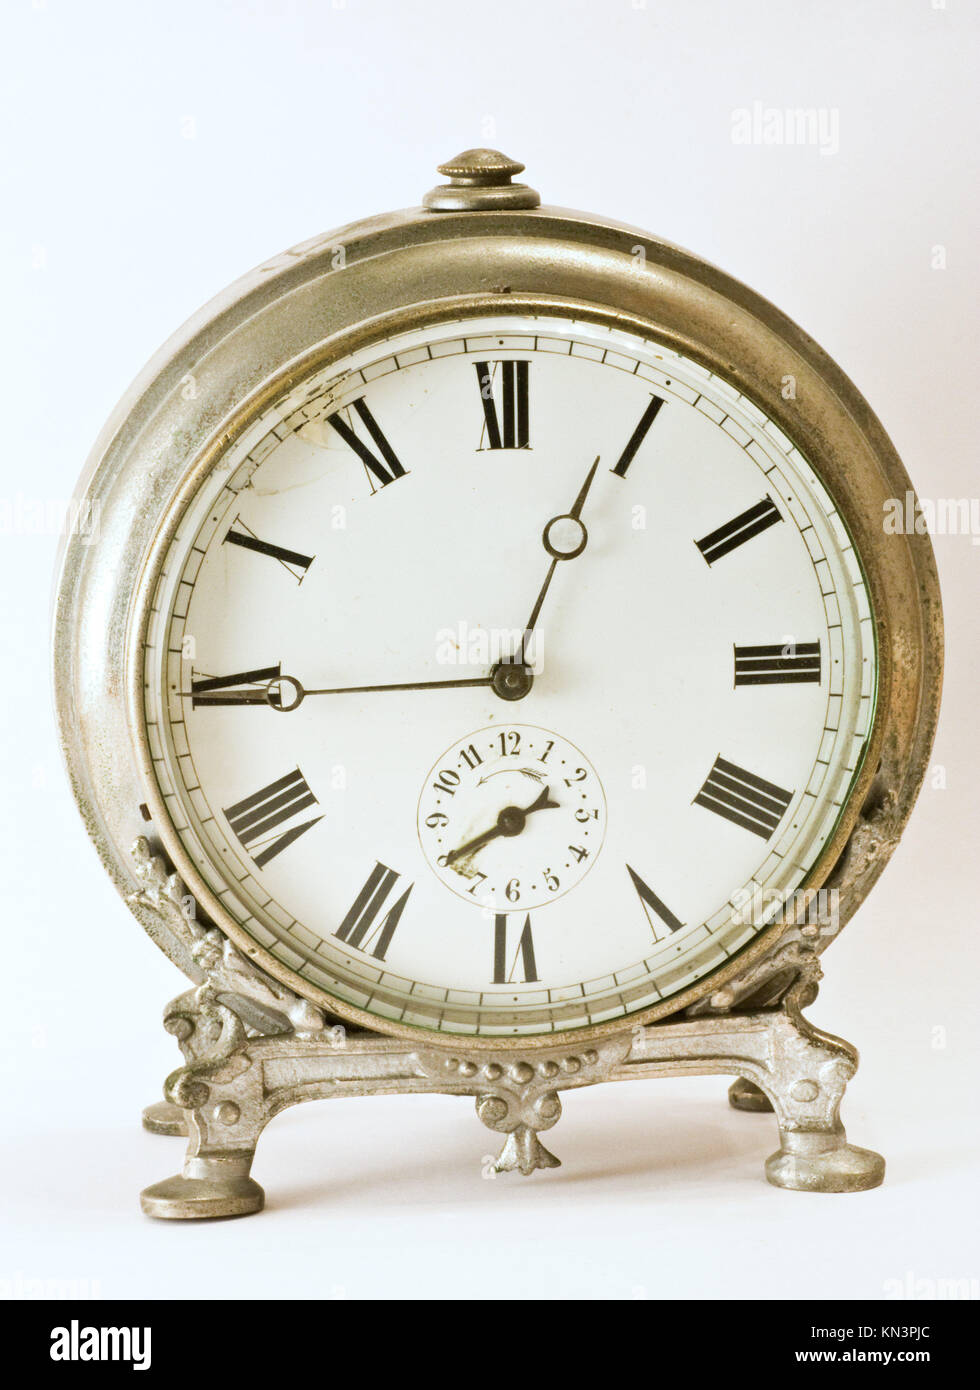 Antique clock, aged 1850, from Paris, currently in an Italian collection. - Stock Image